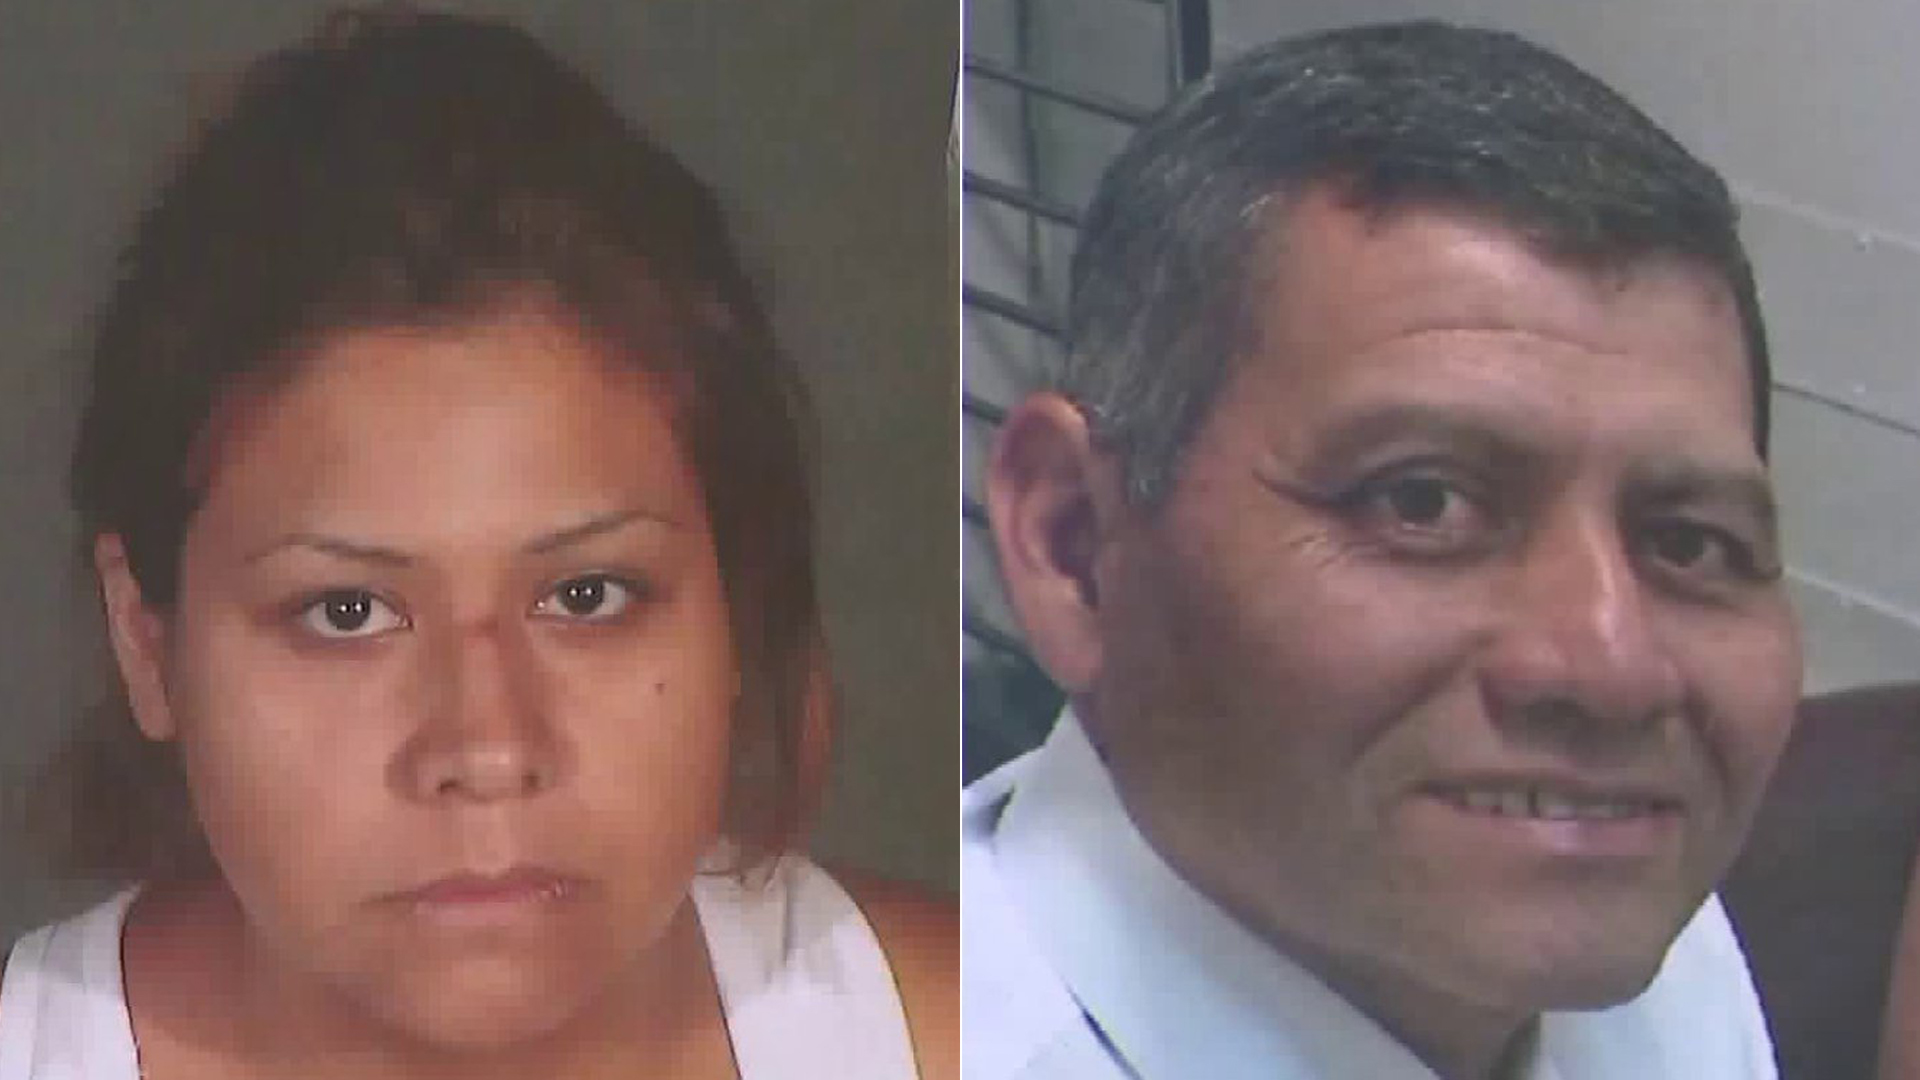 From left to right: Maritza Joana Lara, 27, appears in a booking photo released by Los Angeles police on Aug. 27, 2019. Francisco Hernandez Rivas is seen with his wife in a photo provided by family on Aug. 27, 2019.